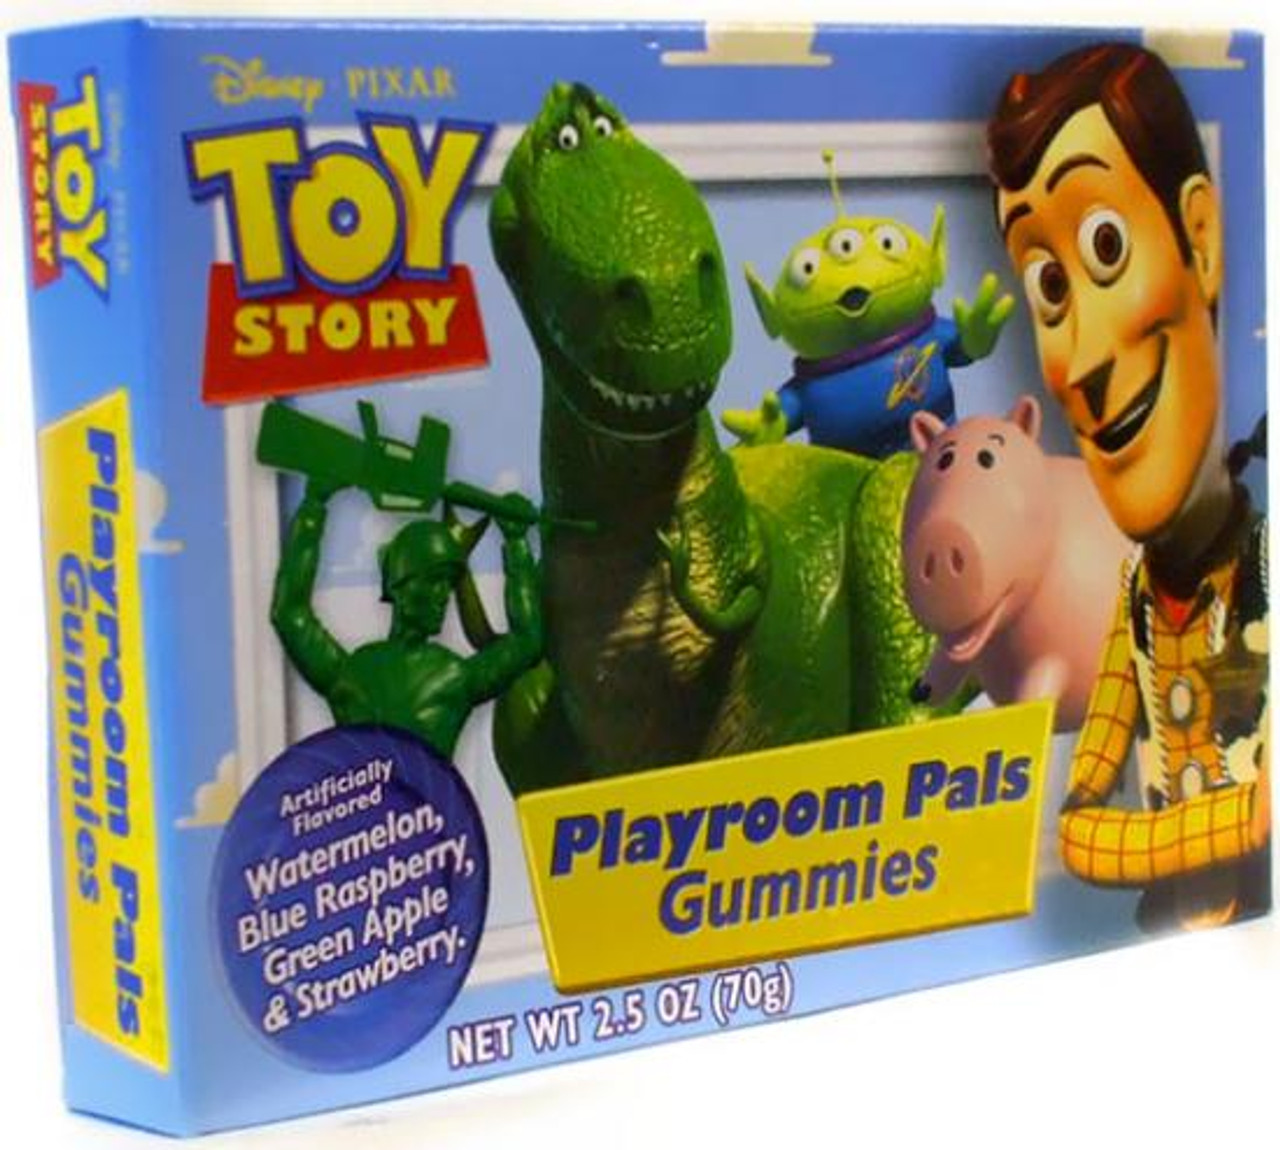 Toy Story Playroom Pals Gummies